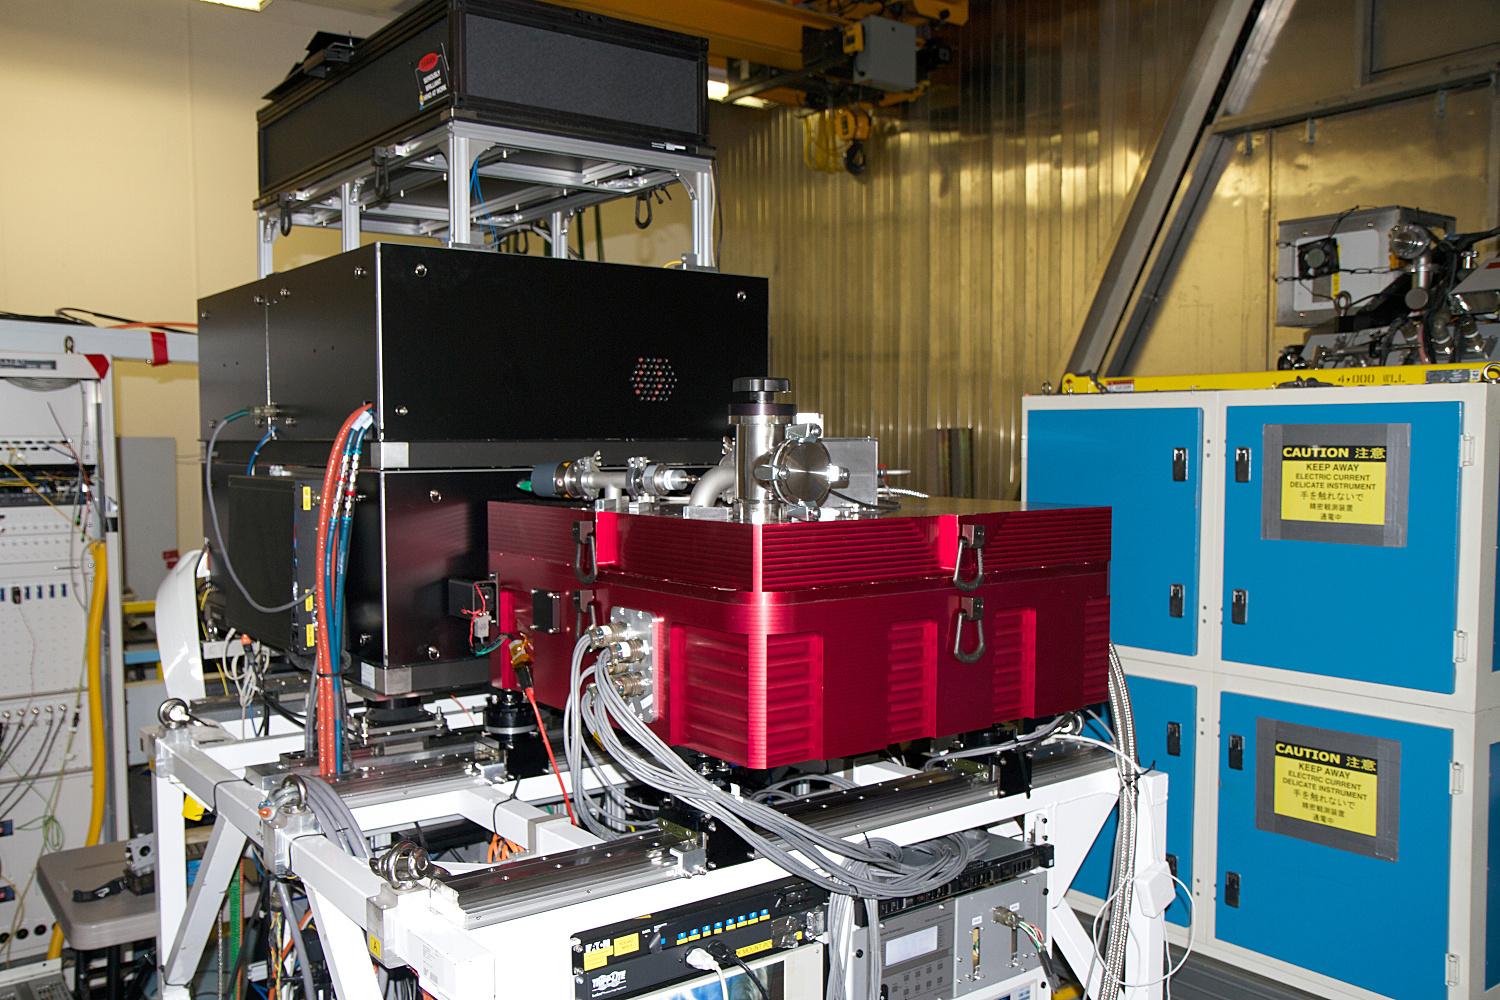 CHARIS (Coronagraphic High Angular Resolution Imaging Spectrograph, the red box) is attached to SCExAO (Subaru Coronagraphic Extreme Adaptive Optics, the black box) at the Nasmyth focus platform of the 8.2-metre Subaru Telescope. Image credit: CHARIS/Princeton Team and NAOJ.